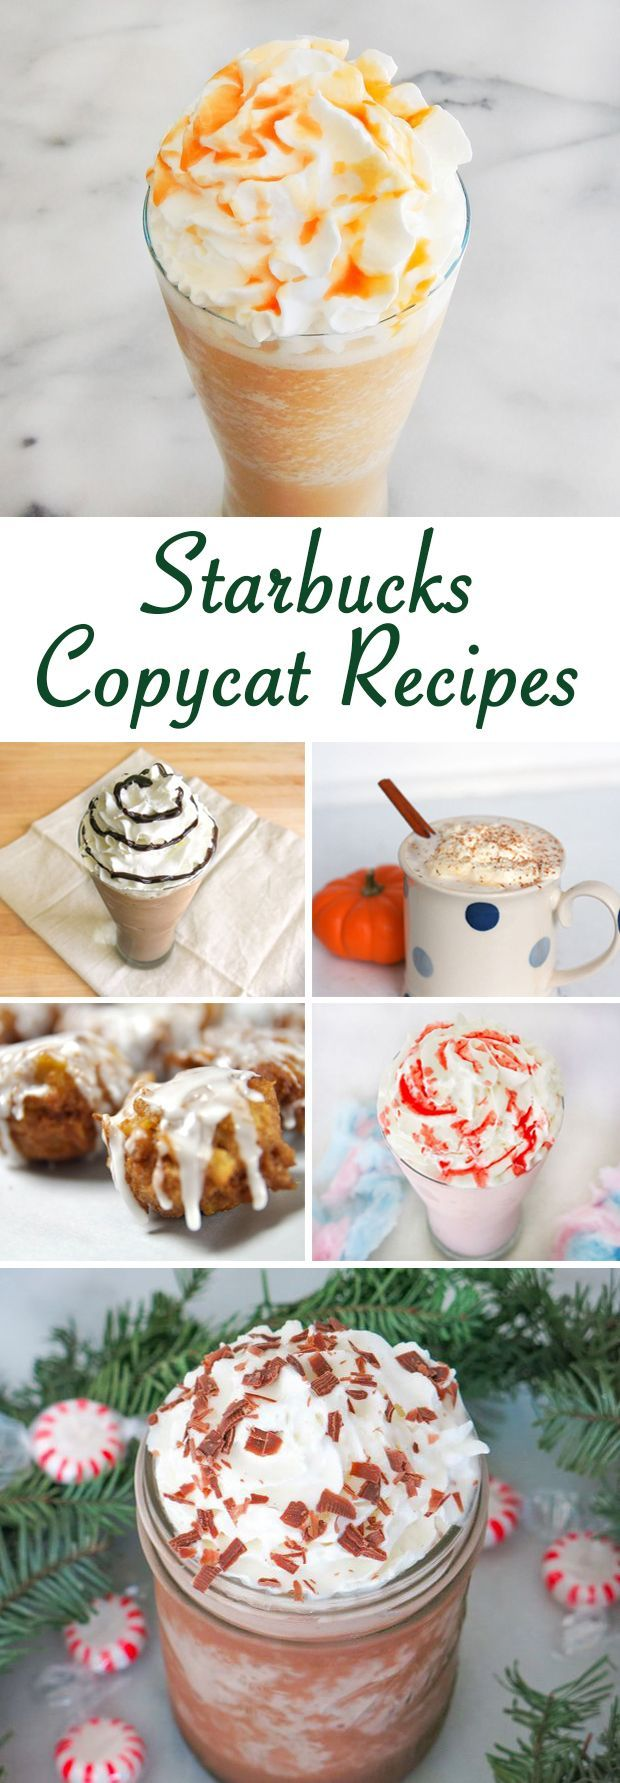 Starbucks is expensive. Make your favorite Starbucks treats at home and save money!